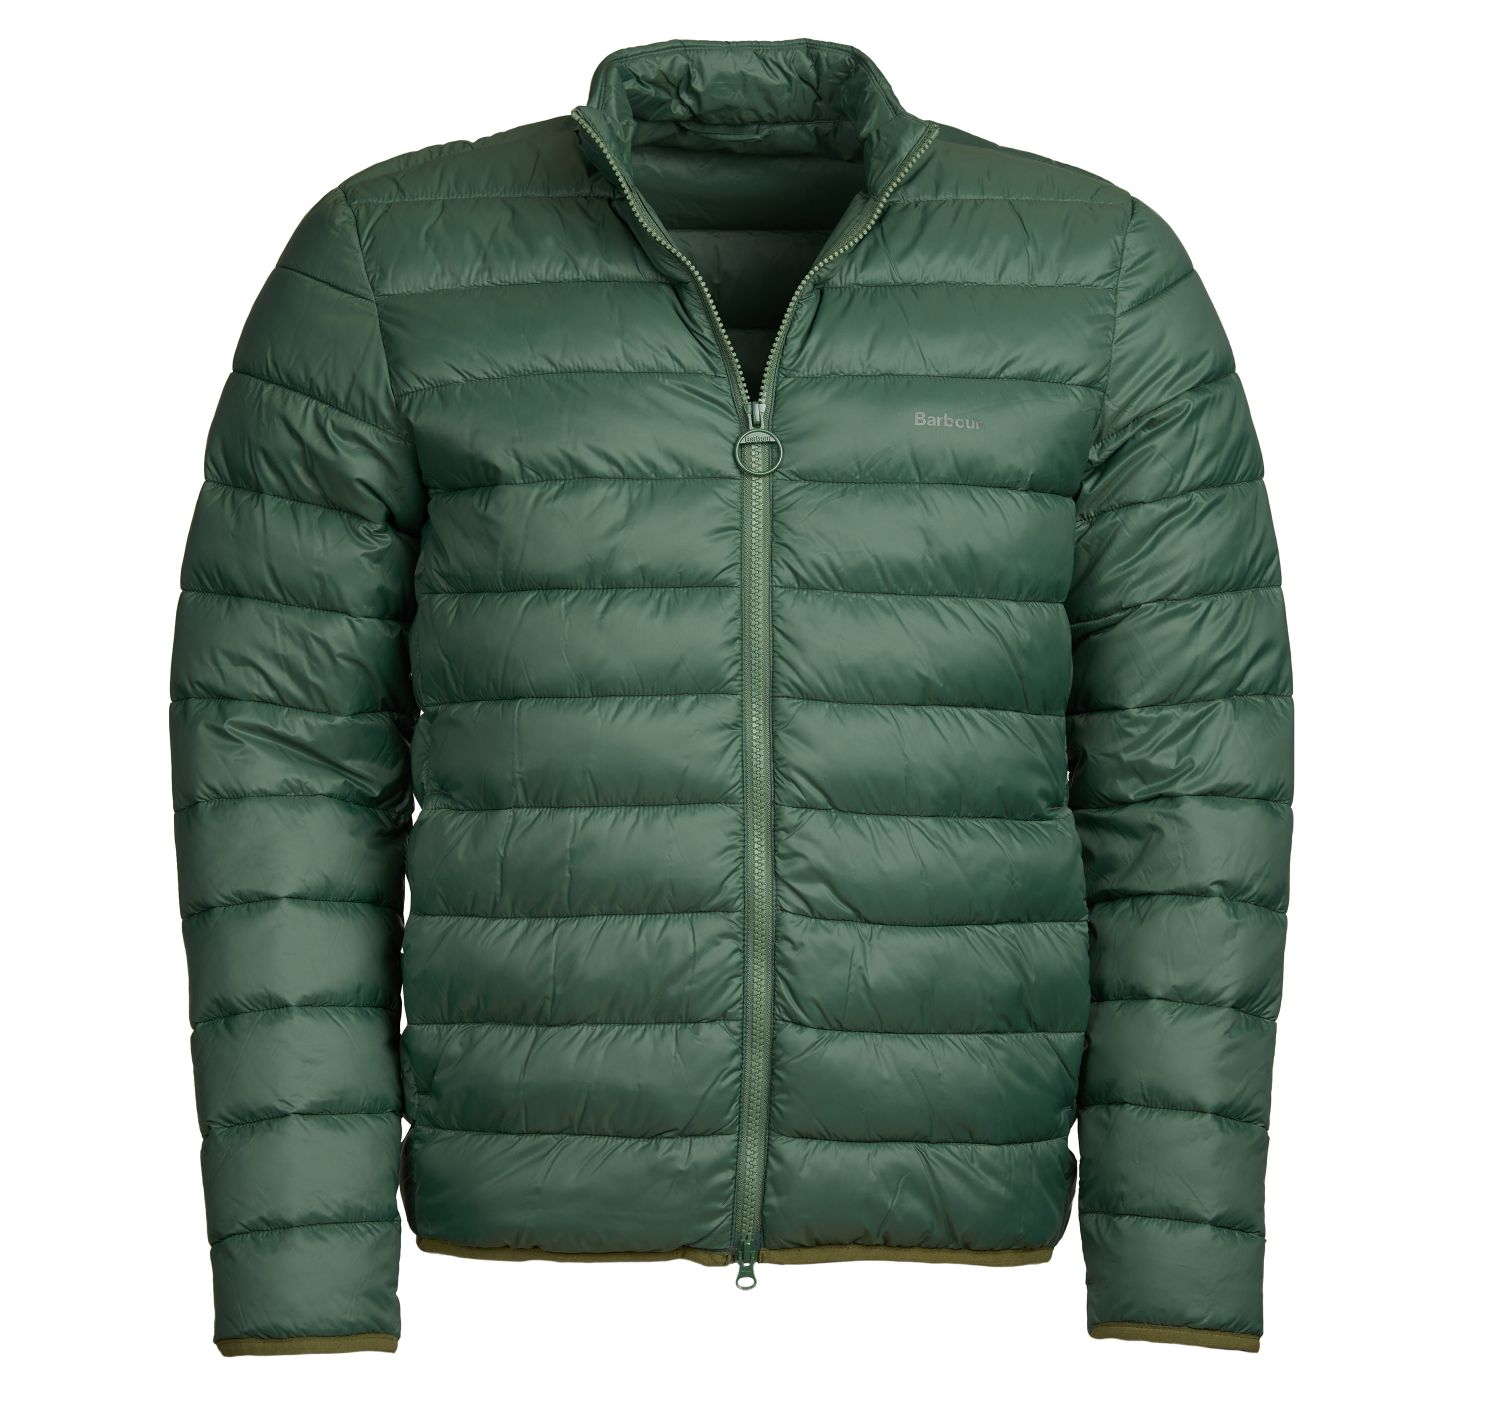 Barbour Penton Quilt Cilantro Barbour Lifestyle Collection: Regular Fit